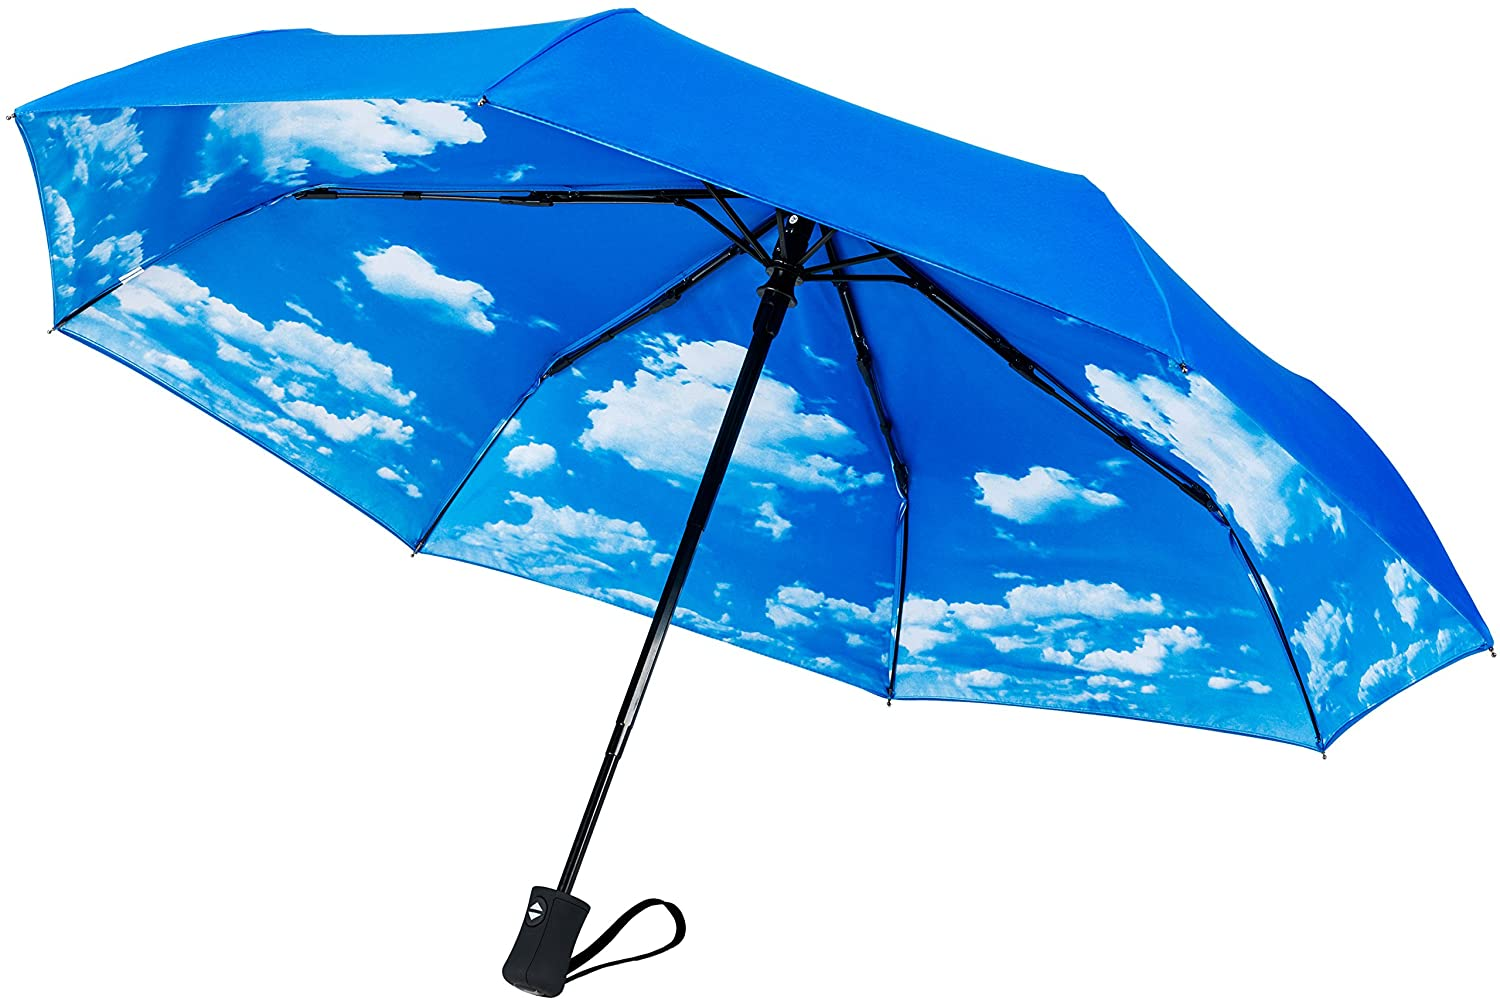 Crown Coast Windproof Umbrella Up To 95 kmph - Compact, Automatic Open / Close Travel Umbrellas All Come With A Lifetime Replacement Guarantee (Black)